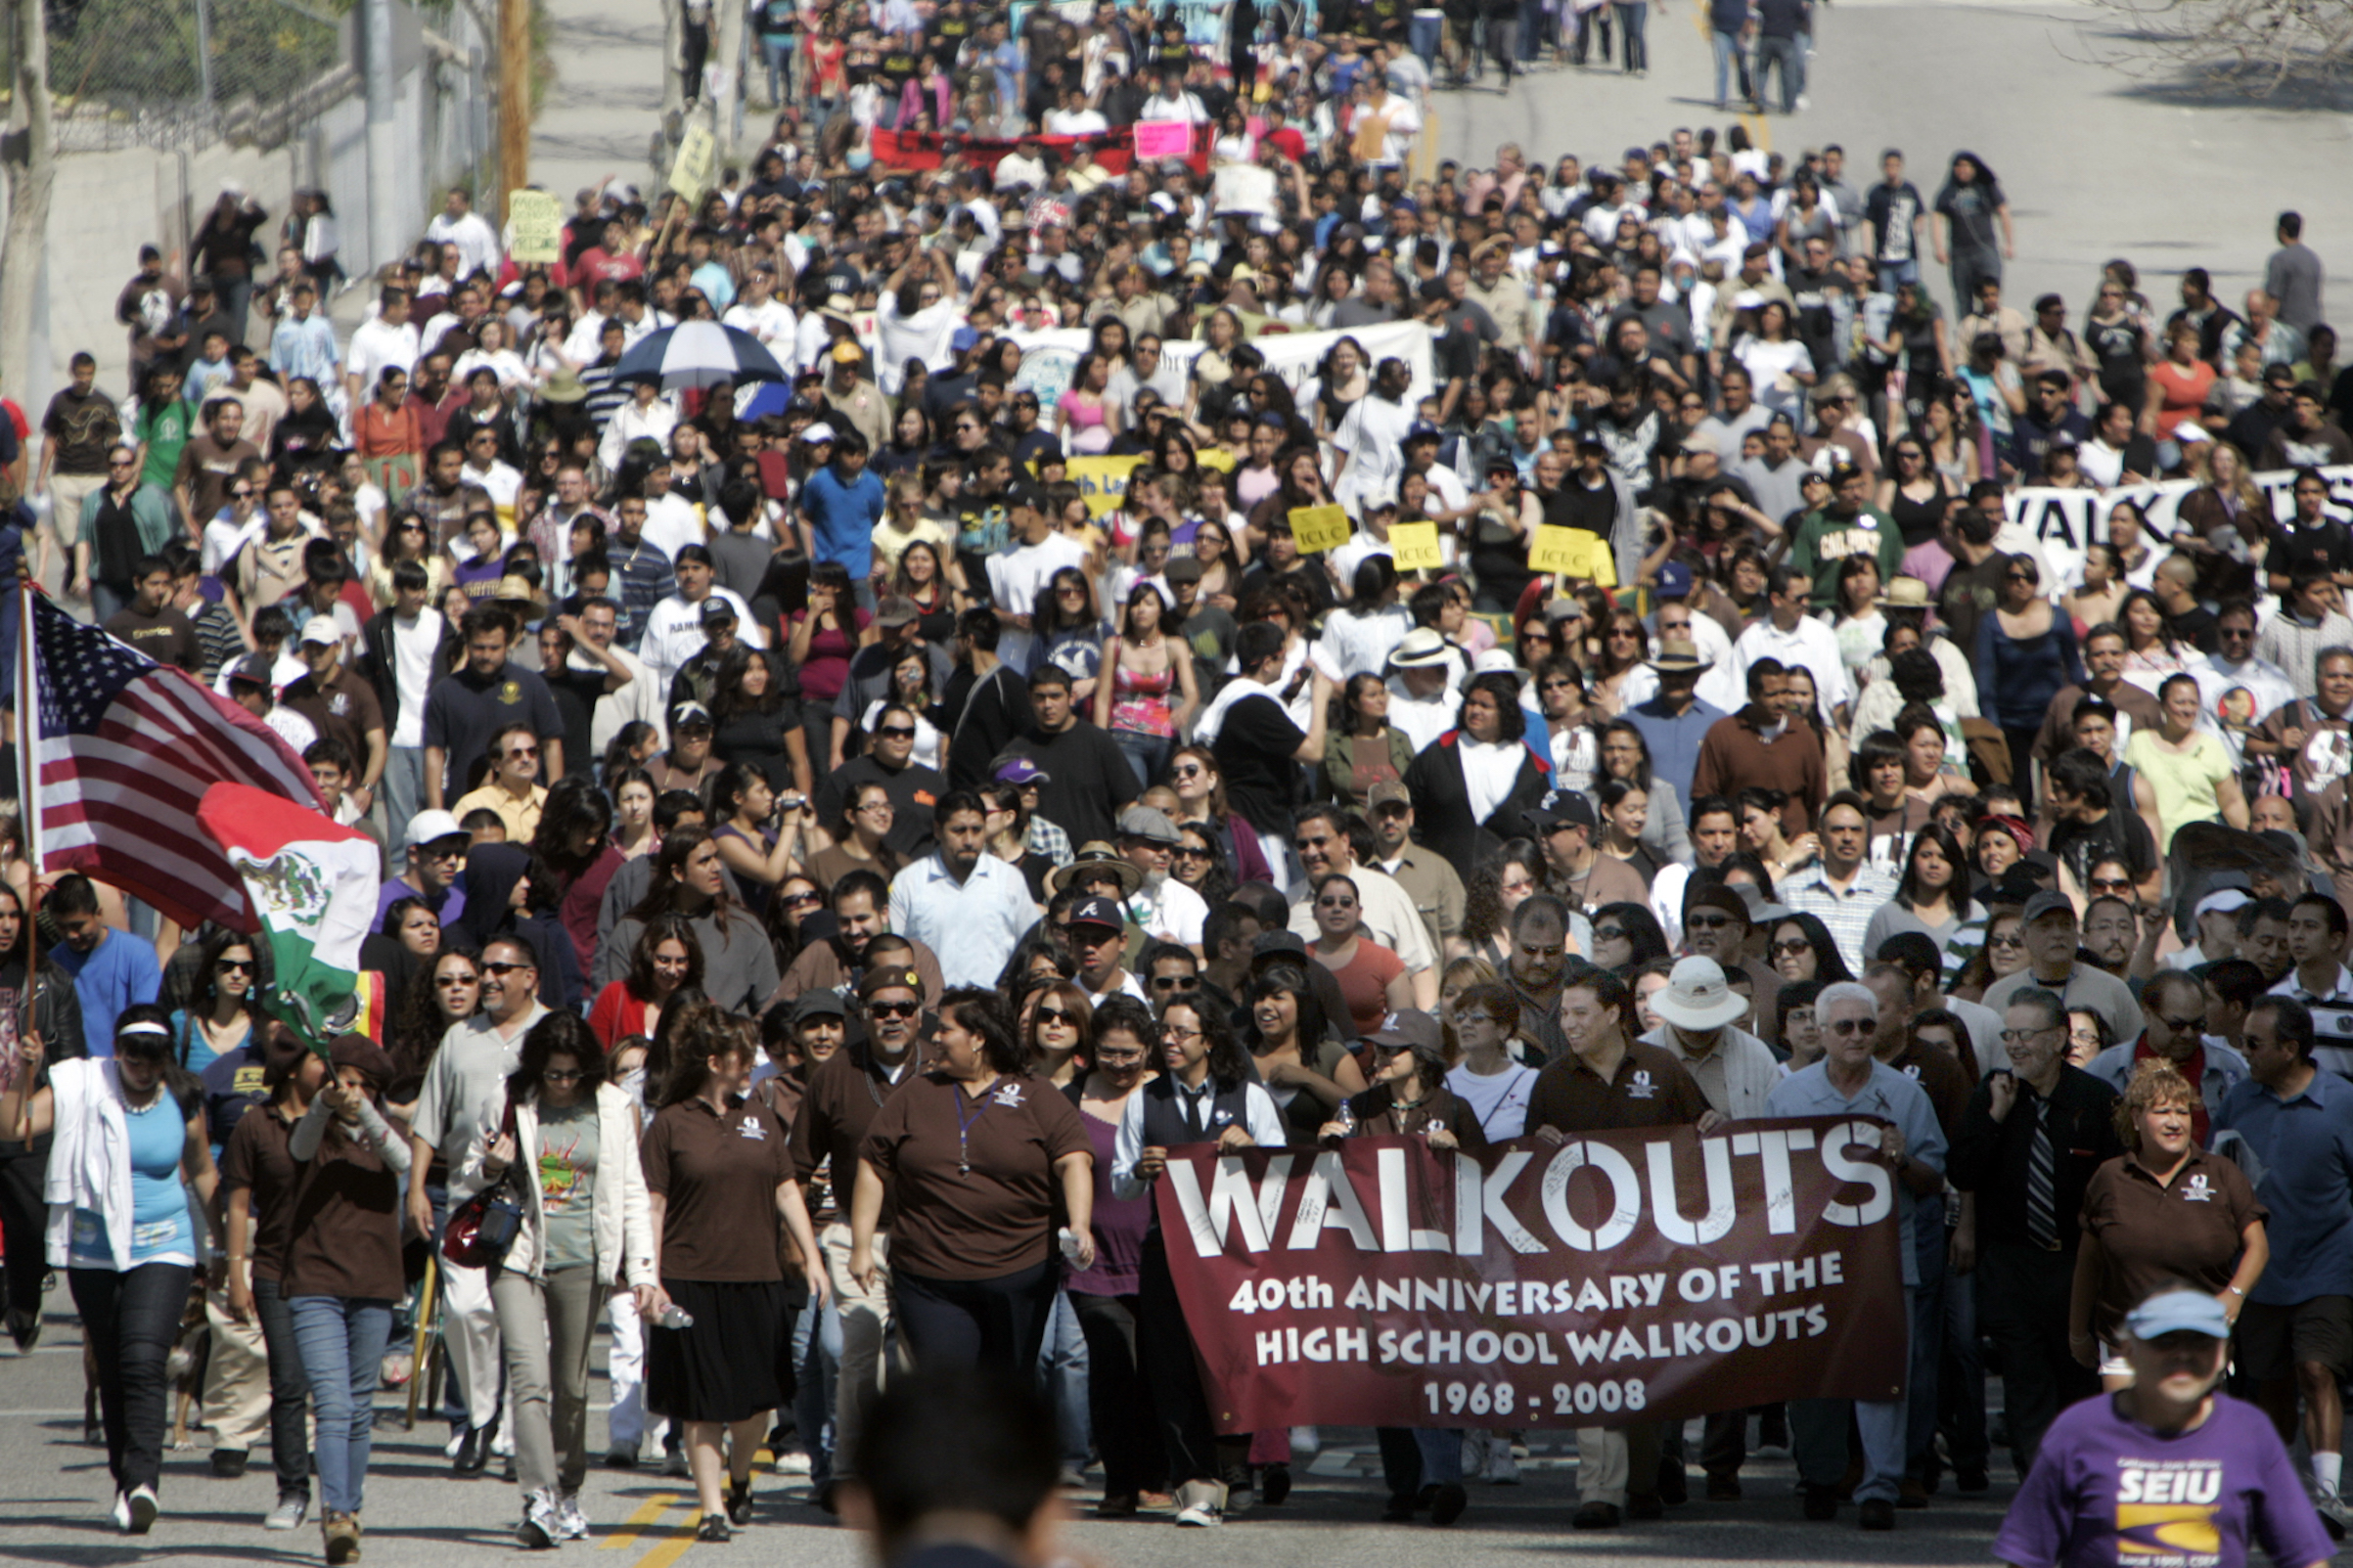 On its 40th anniversary, more than a thousand marchers turned to march from Lincoln High School to commemorate the 1968 East LA school walkout that launched the Chicano Civil Rights Movement.